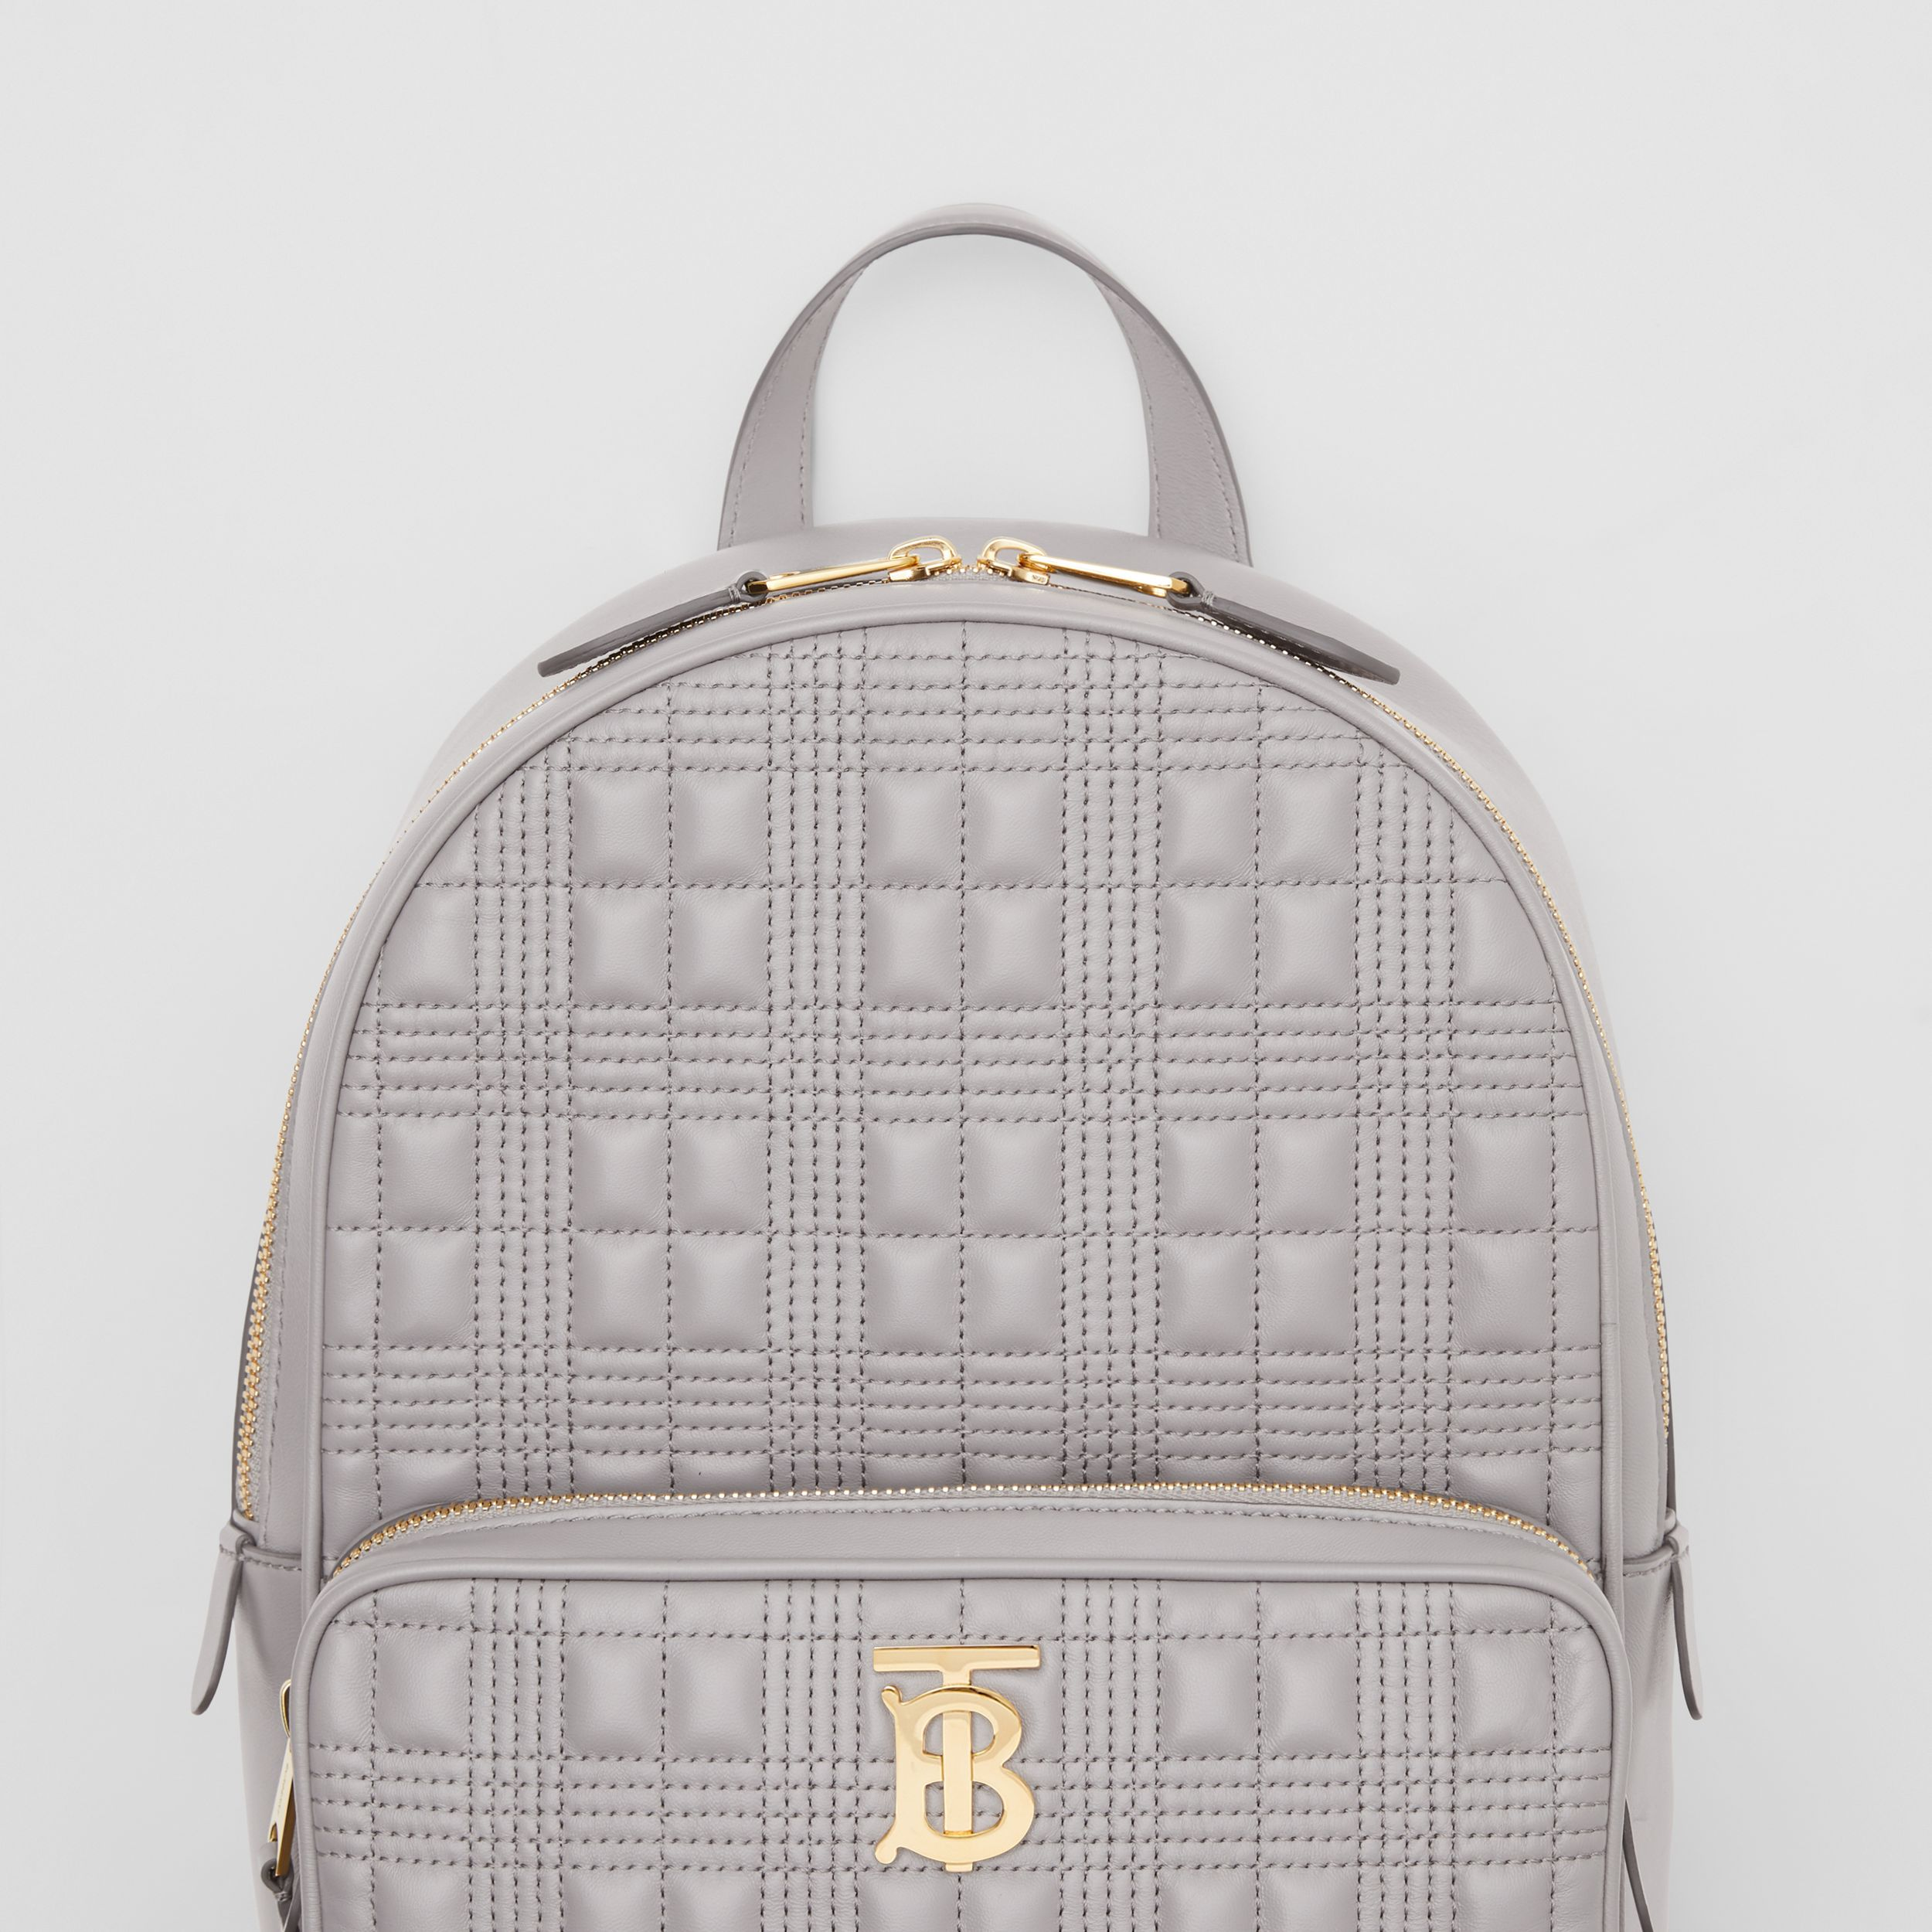 Quilted Lambskin Backpack in Cloud Grey - Women | Burberry - 2